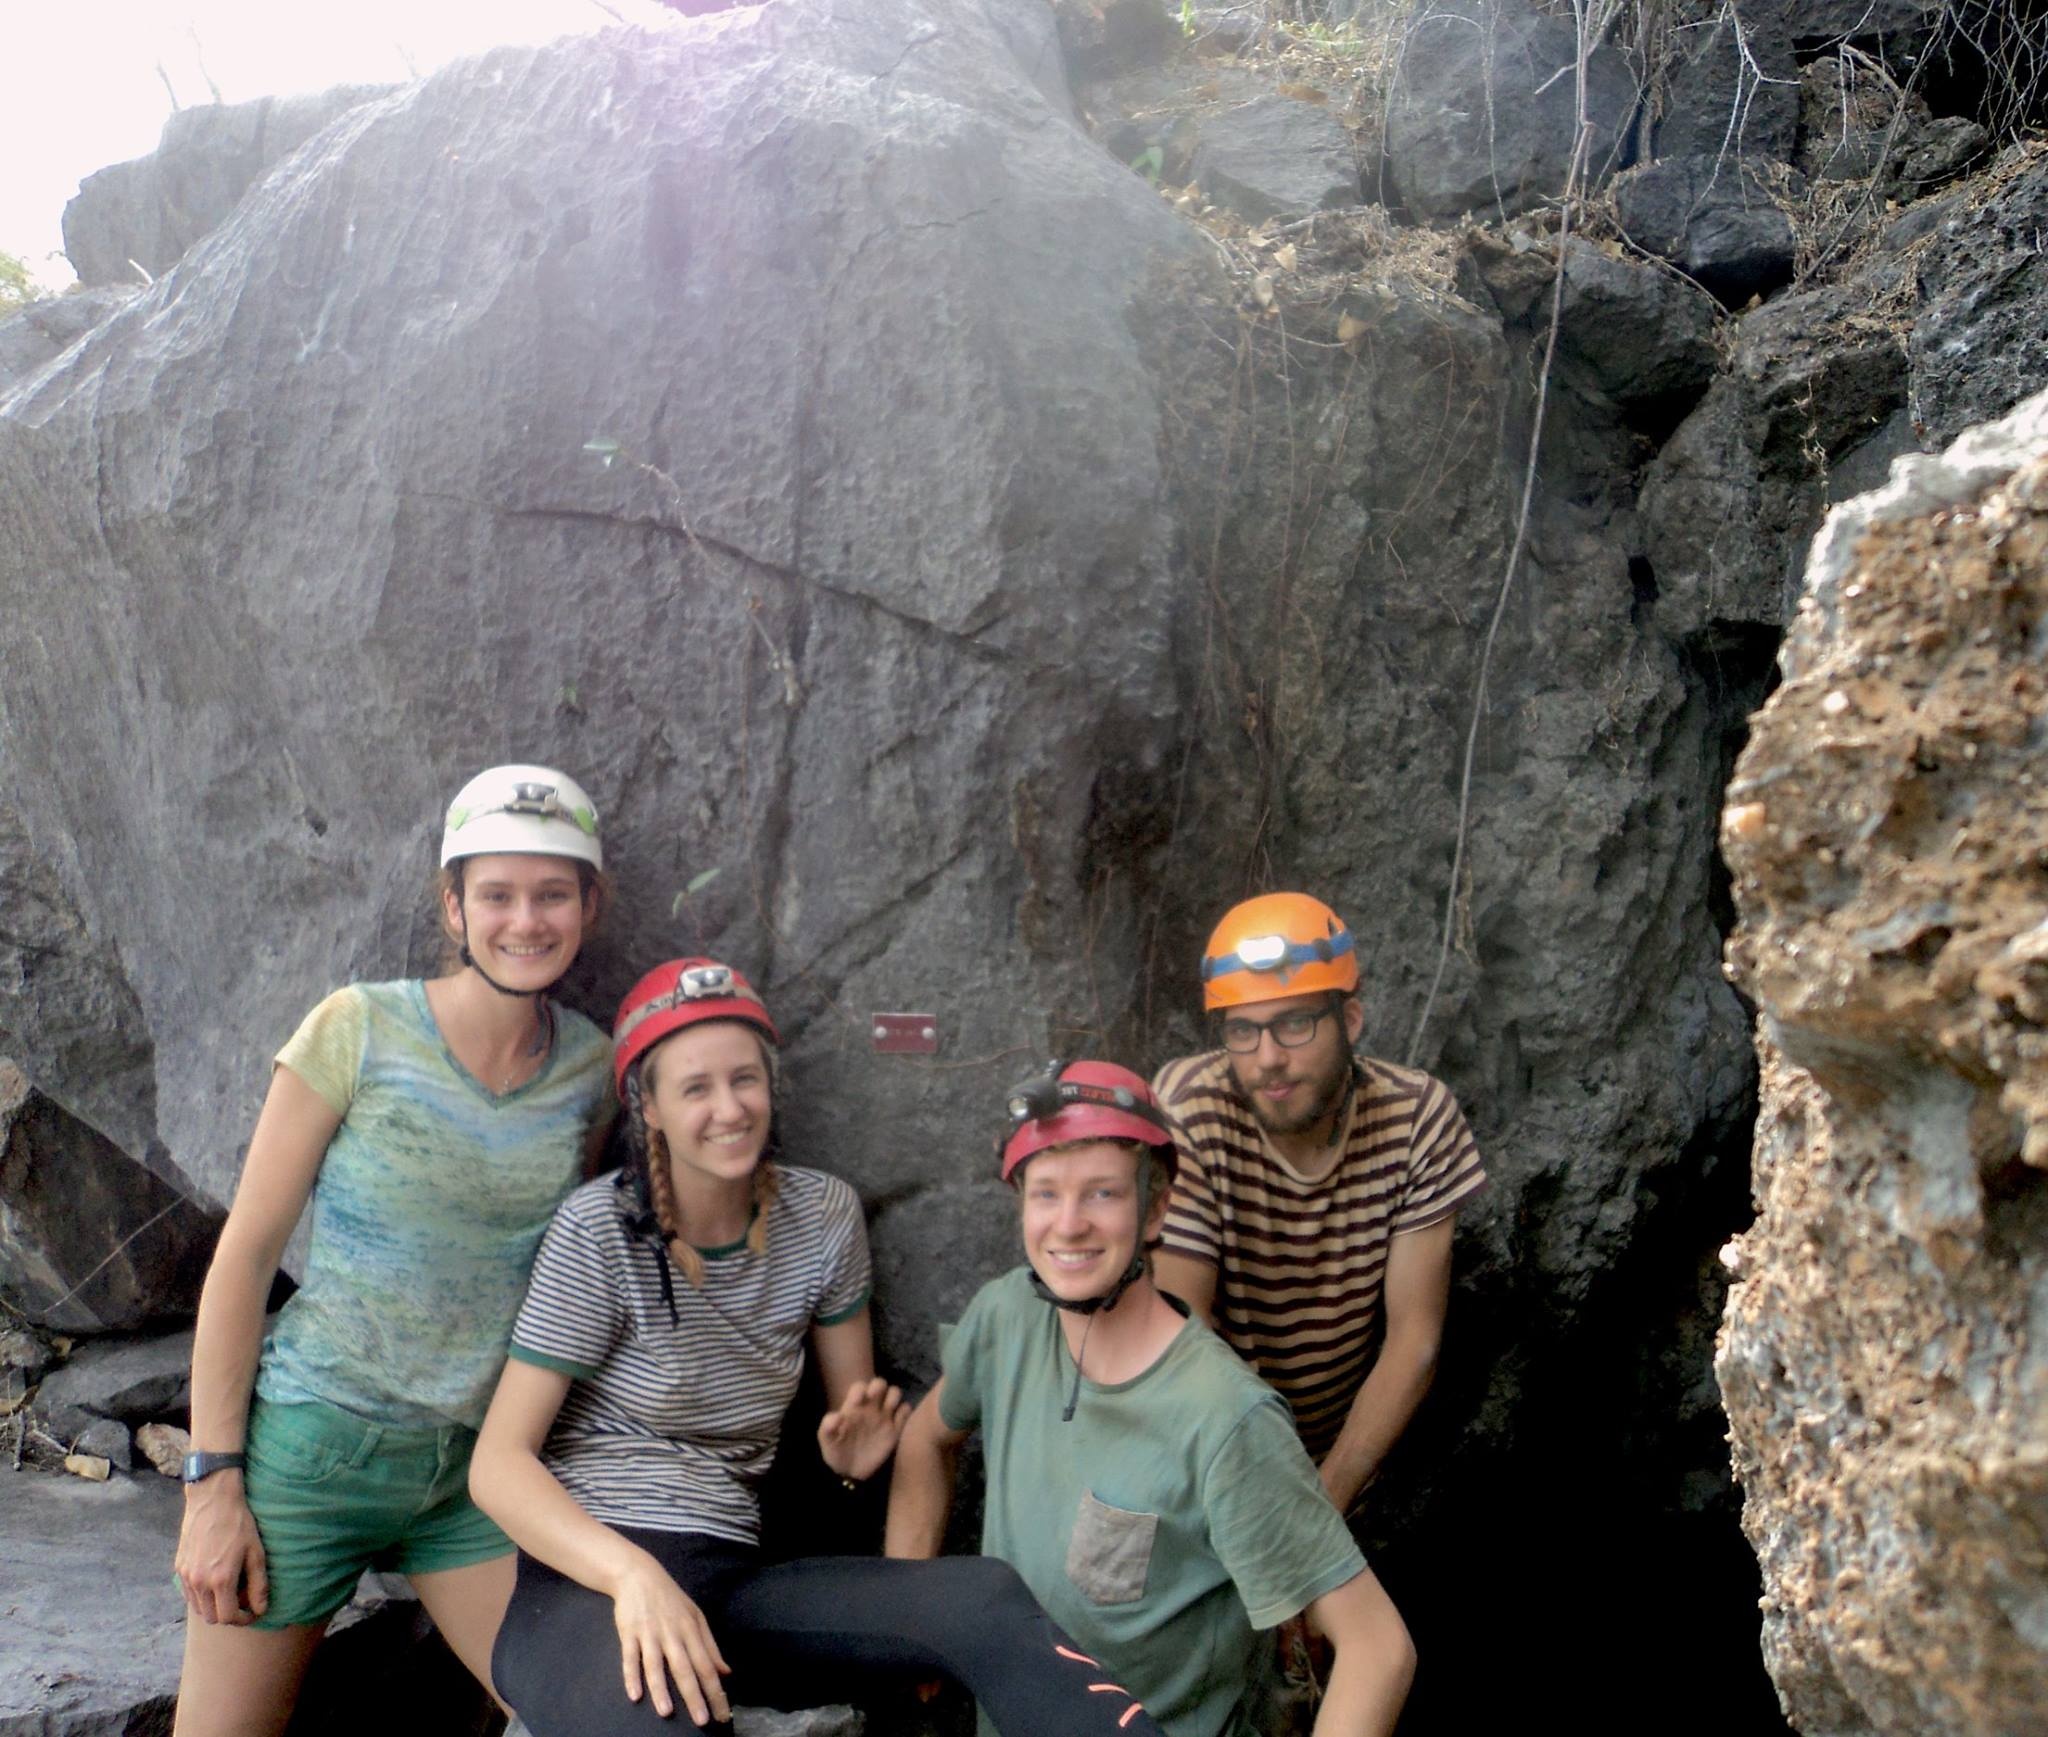 All of us extremely excited of our discovery of a new connection between cave systems. (Standing at the mouth of CH)